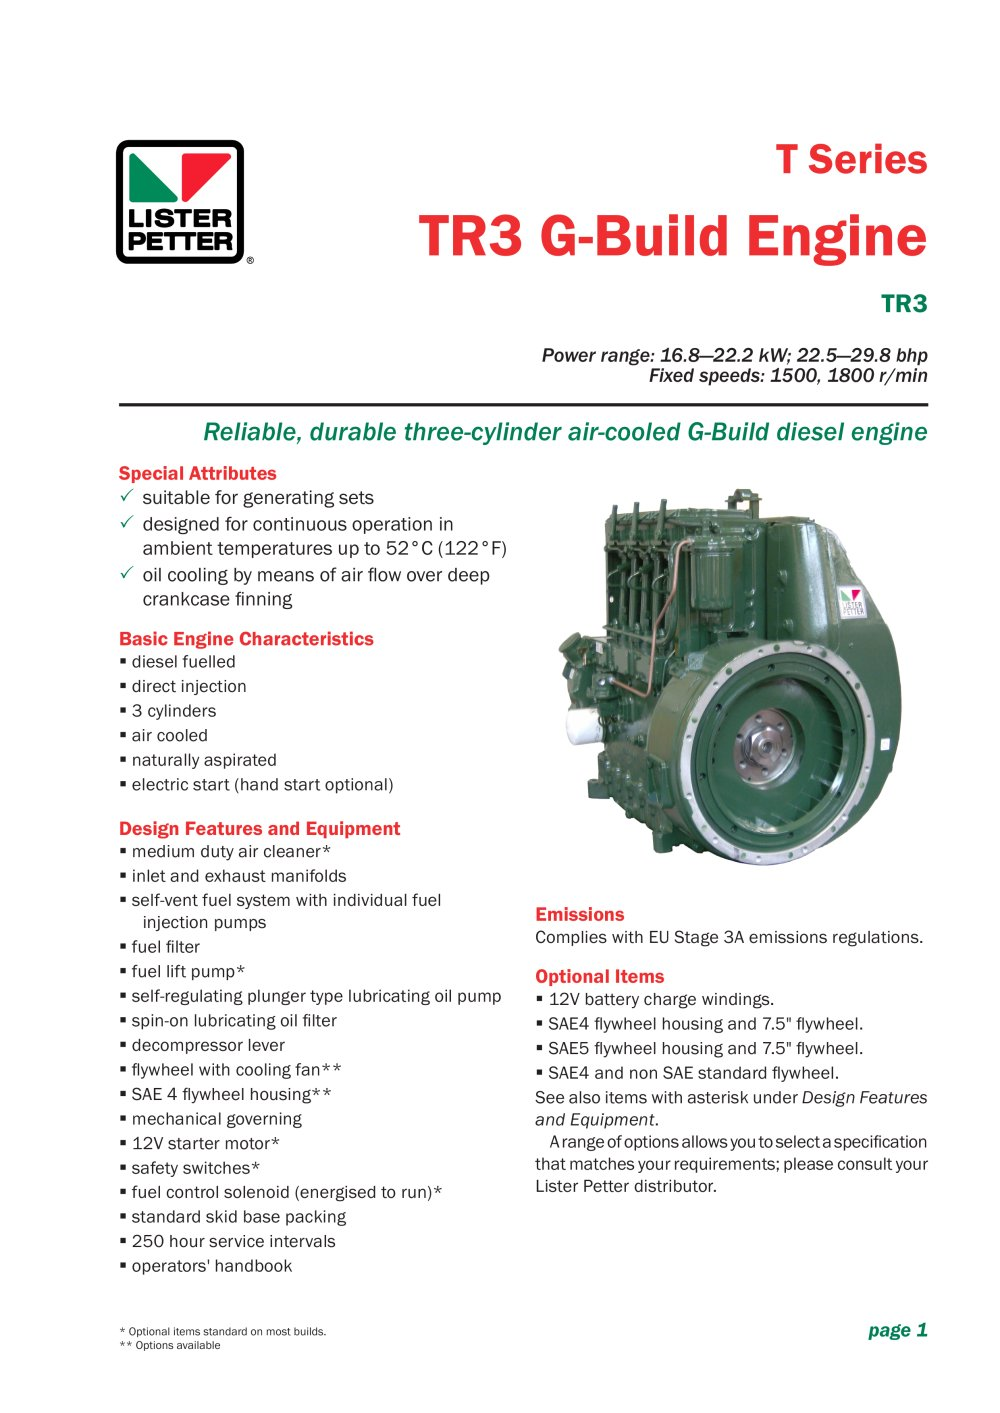 TR3 G-Build Engine - 1 / 2 Pages